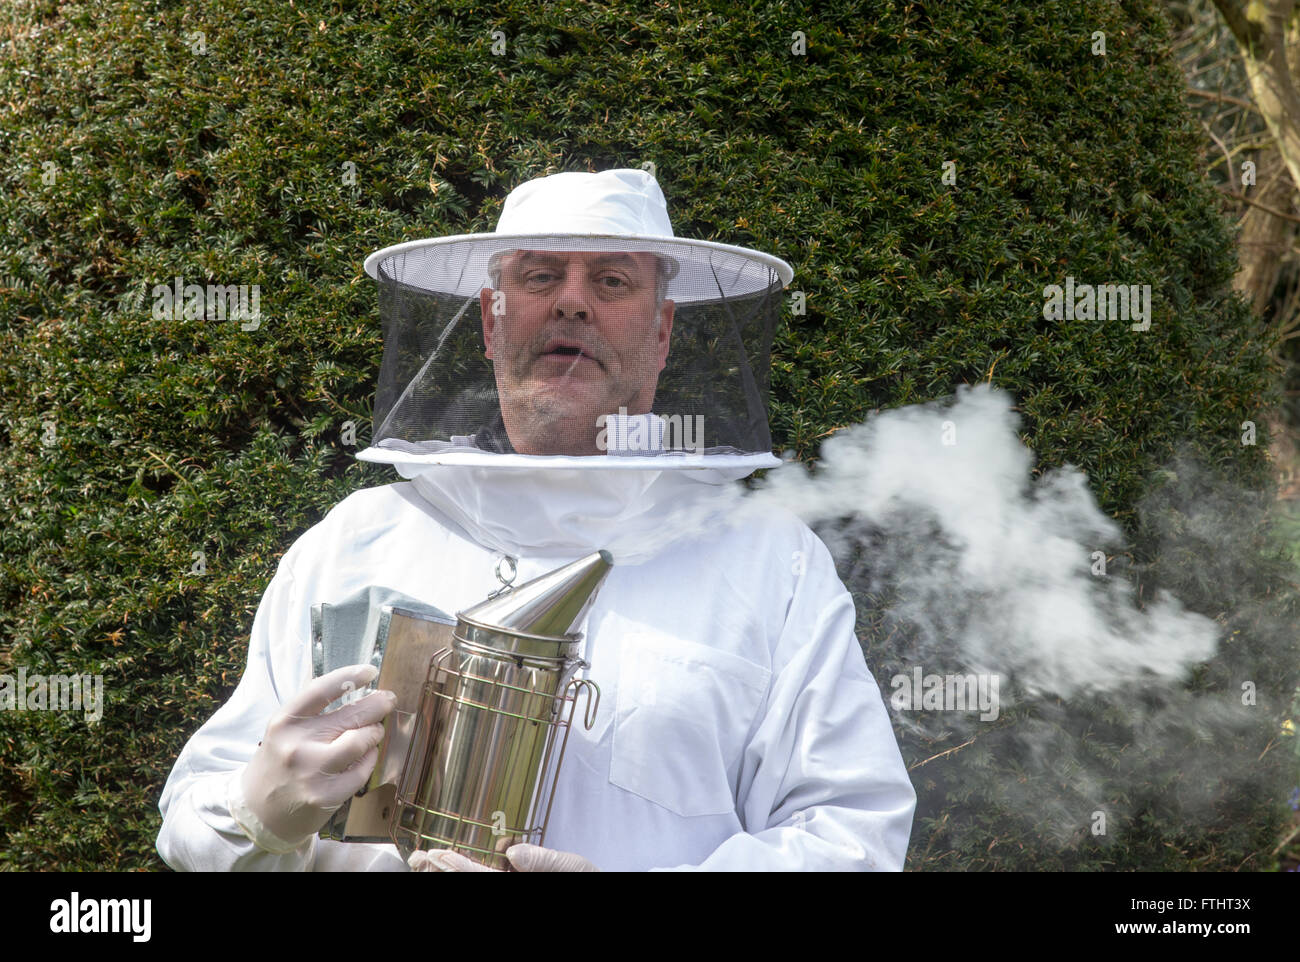 Portrait of a beekeeper with smoker - Stock Image